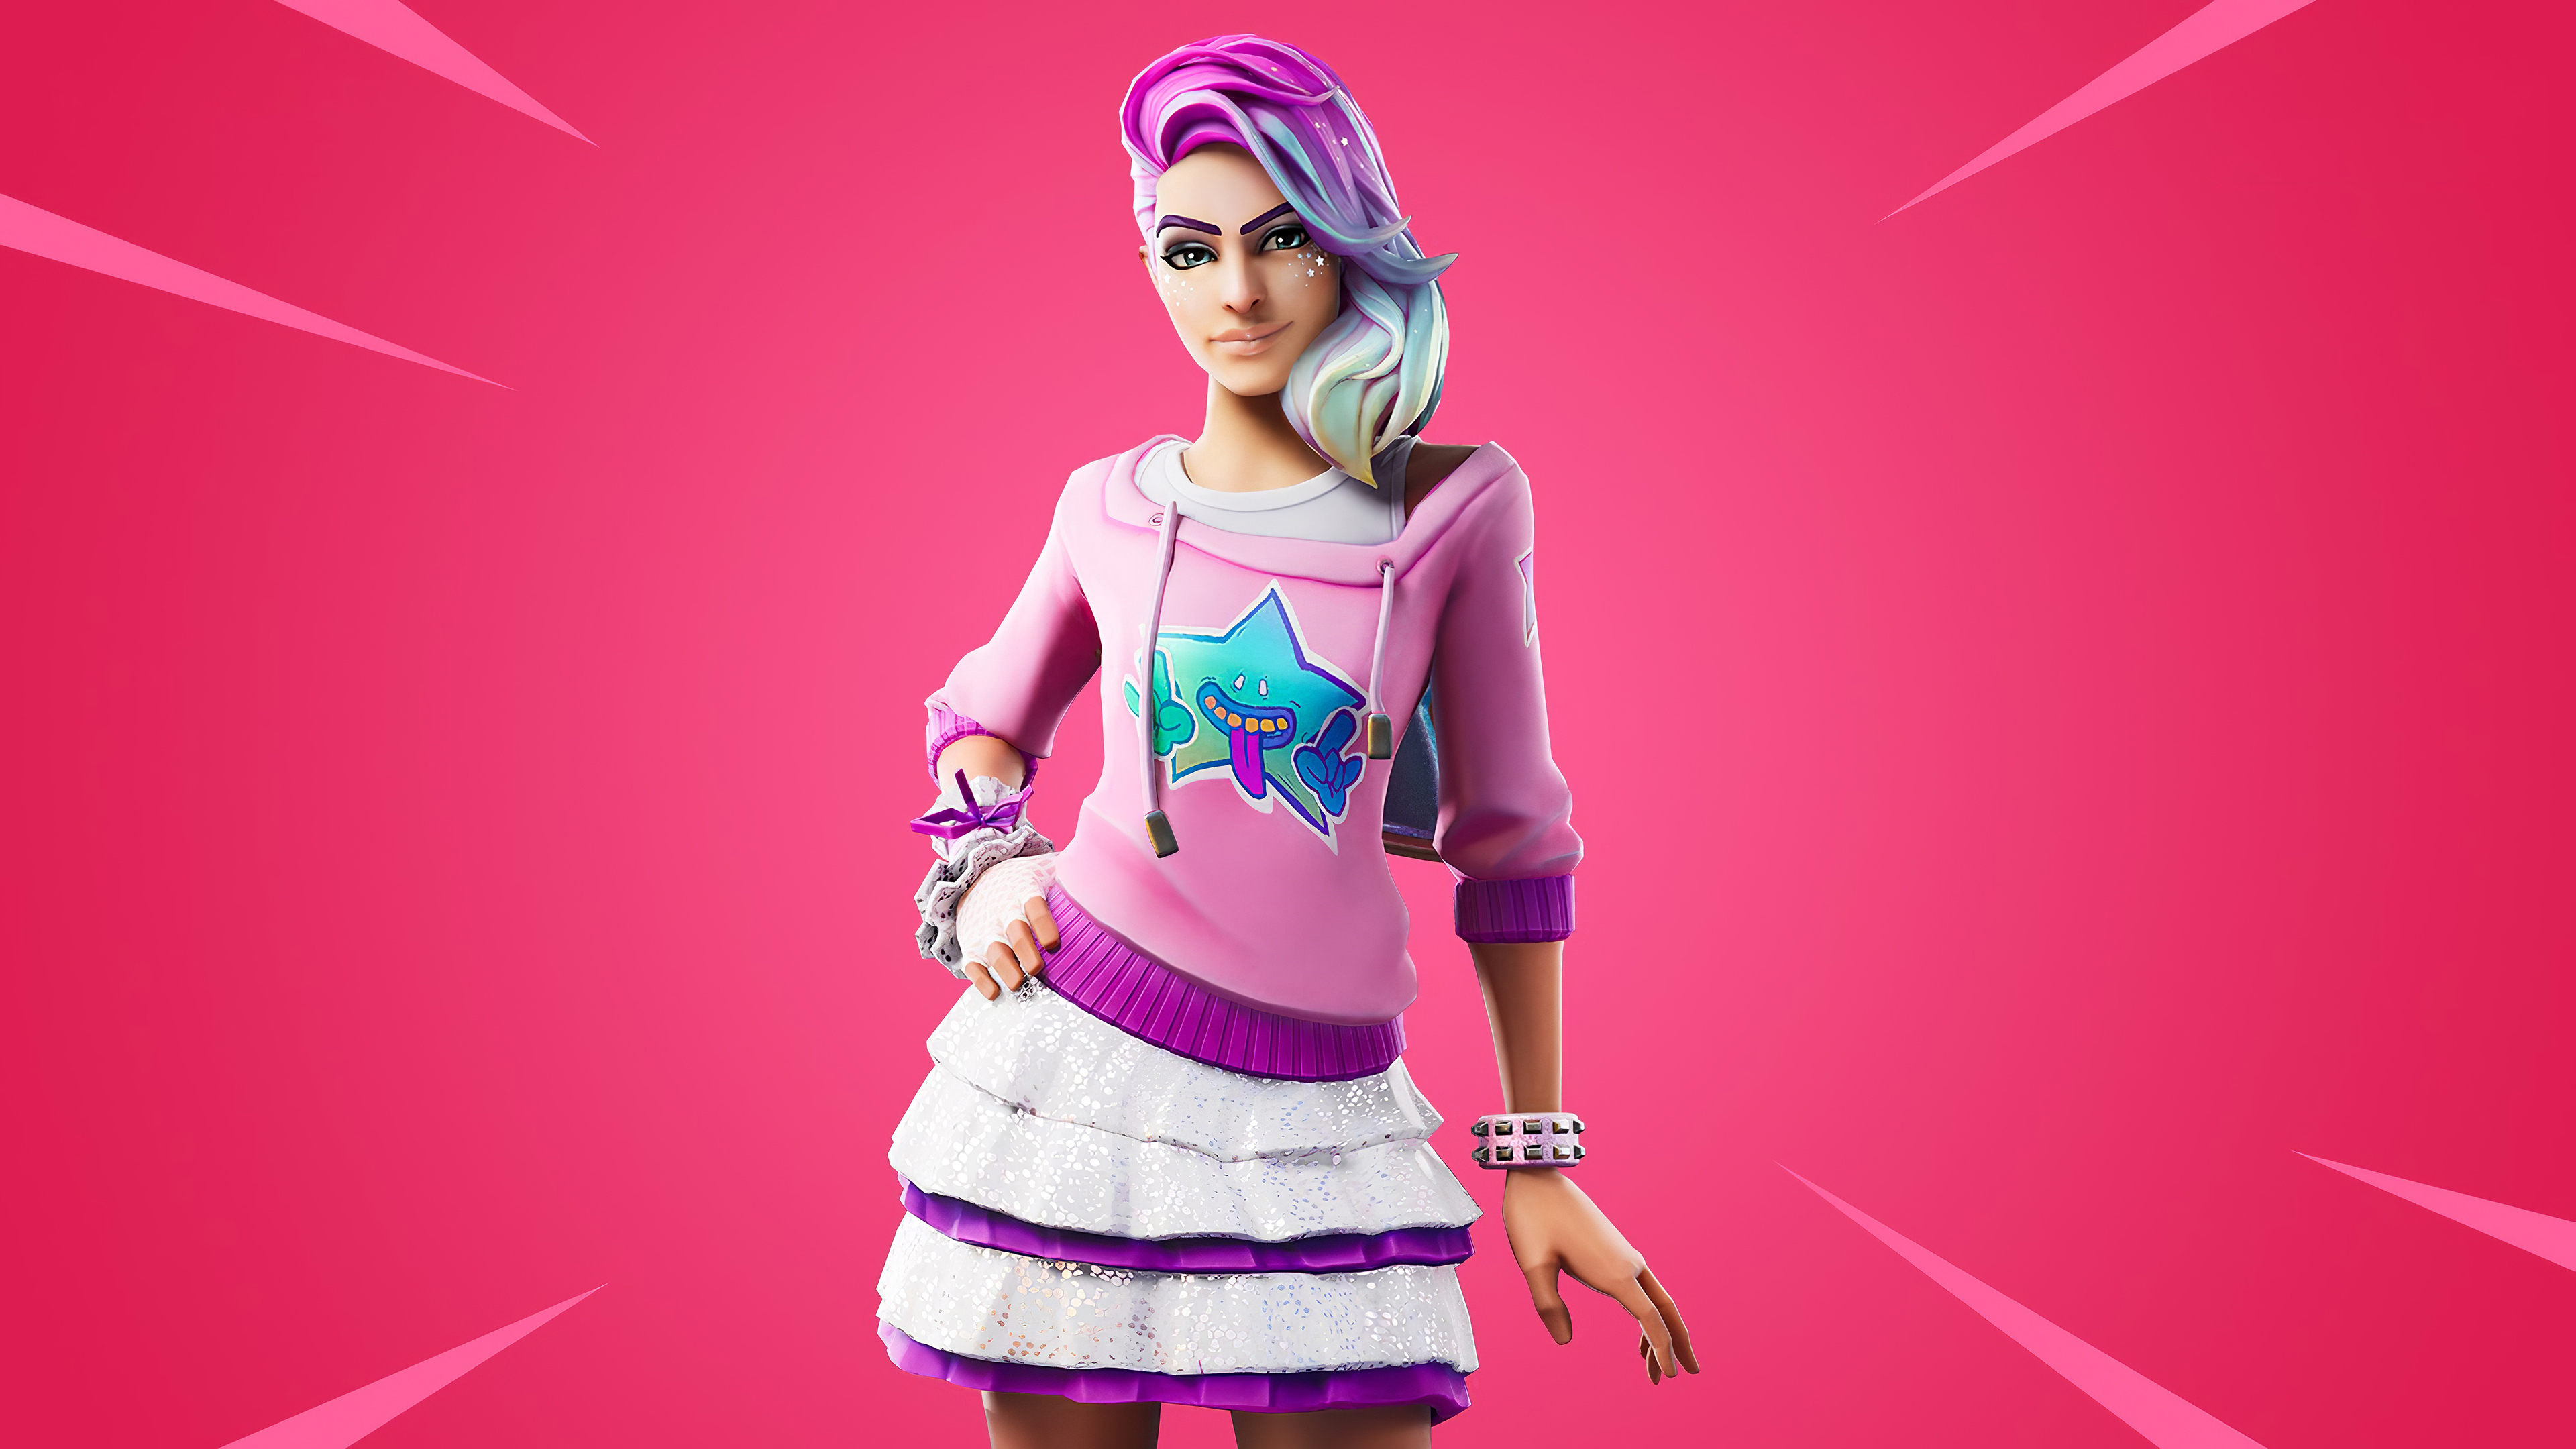 fortnite chapter two starlie outfit 1572370211 - Fortnite Chapter Two Starlie Outfit - hd-wallpapers, games wallpapers, fortnite wallpapers, fortnite chapter 2 wallpapers, 4k-wallpapers, 2019 games wallpapers